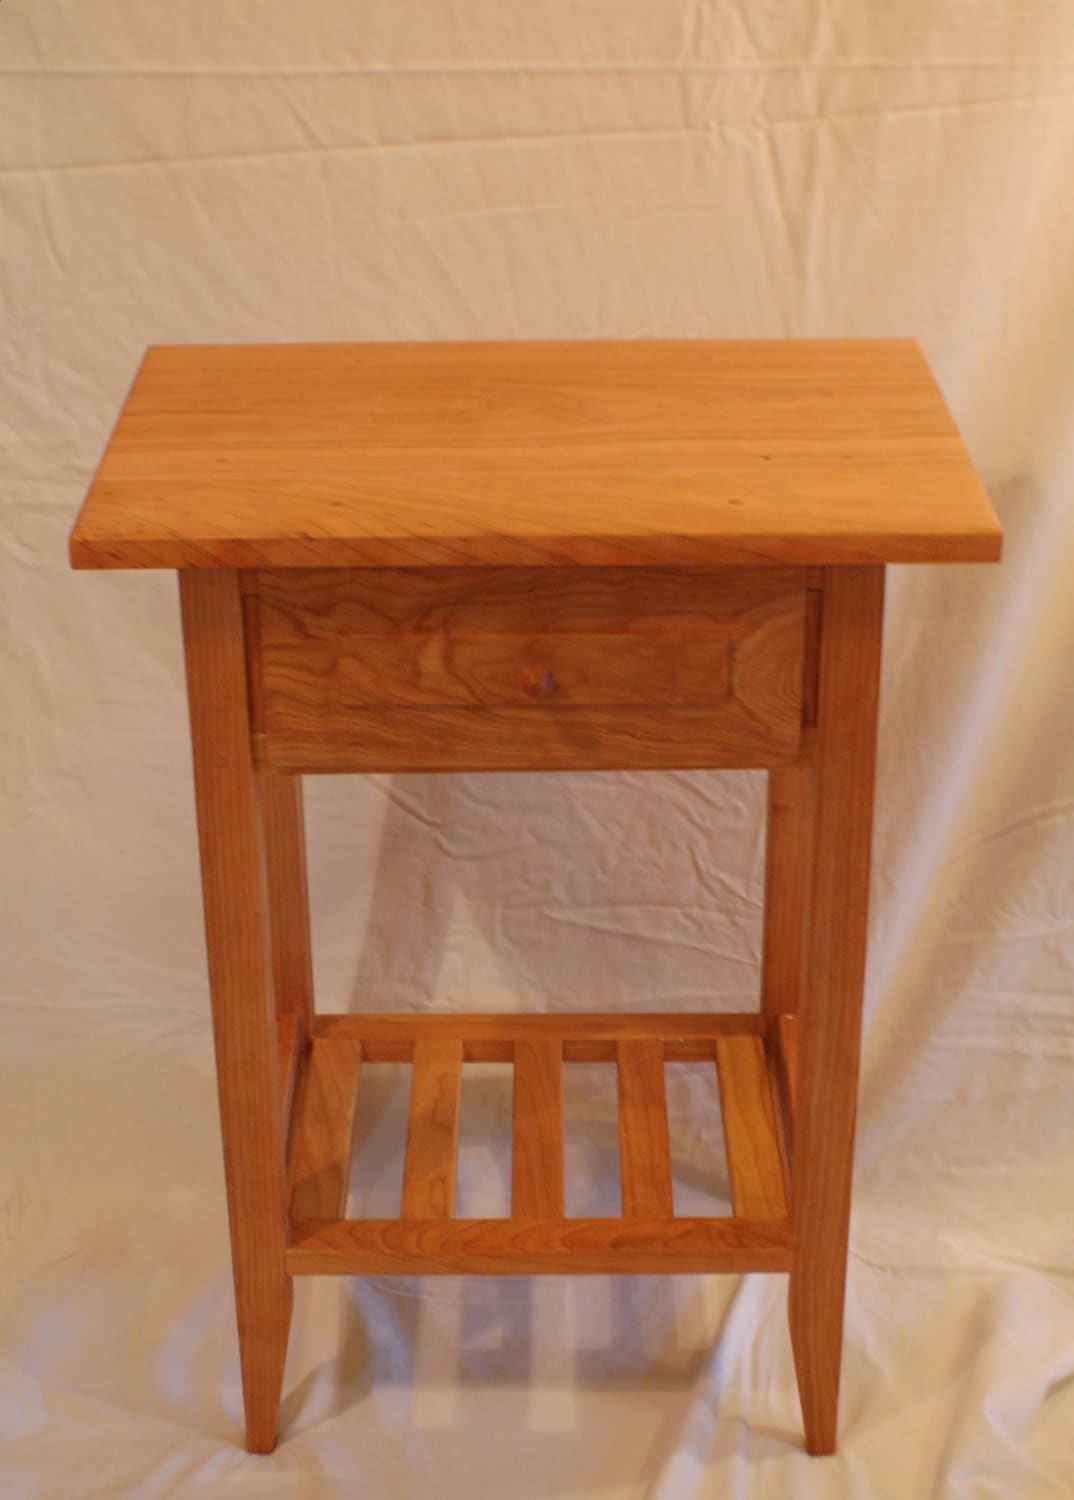 Cherry Shaker Style Nightstand End Table With Drawer And